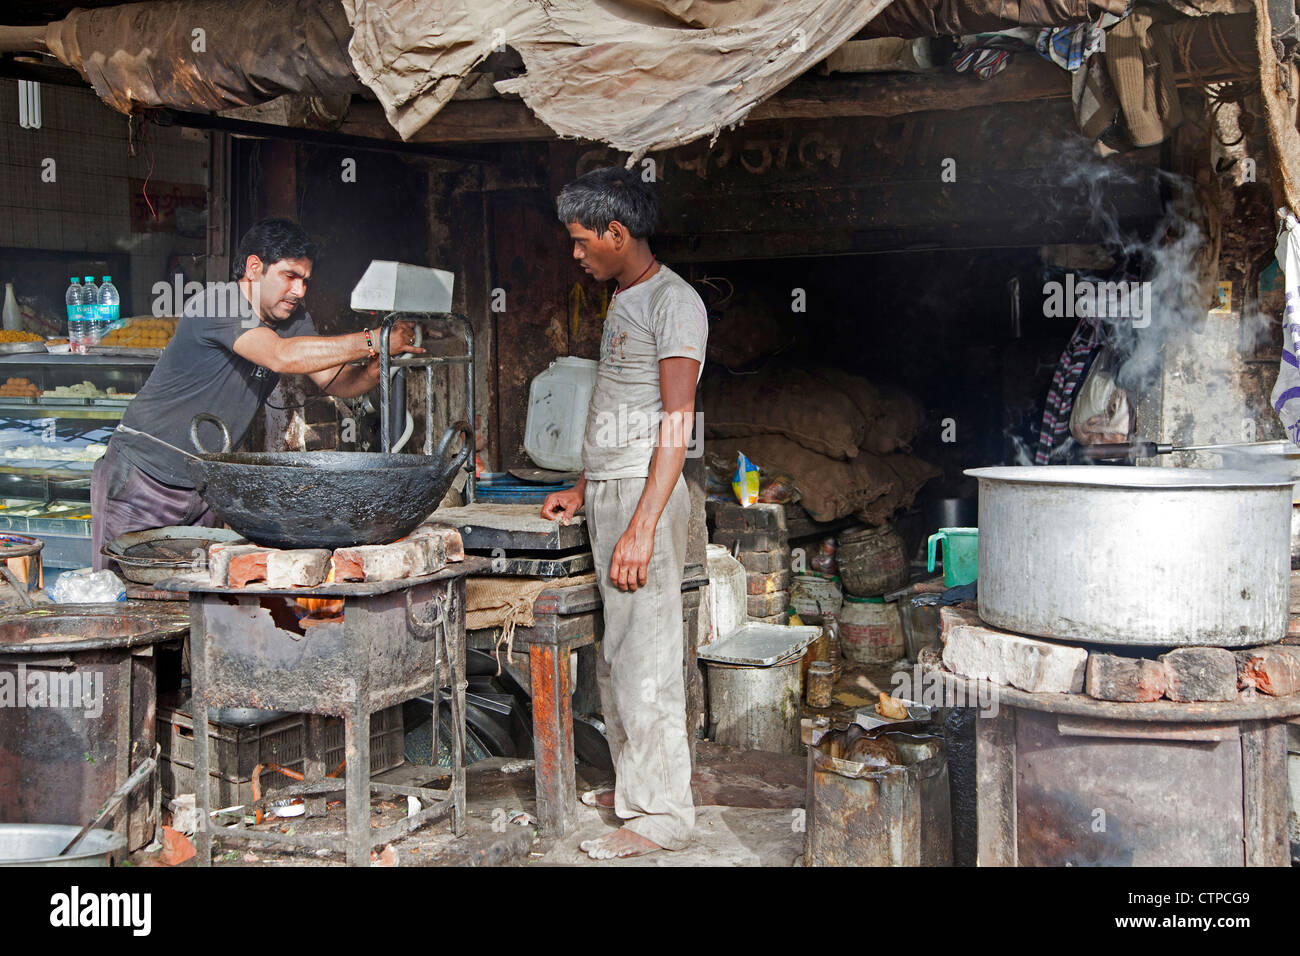 Men cooking food in dirty unsanitary primitive kitchen in Mathura, Uttar Pradesh, India - Stock Image